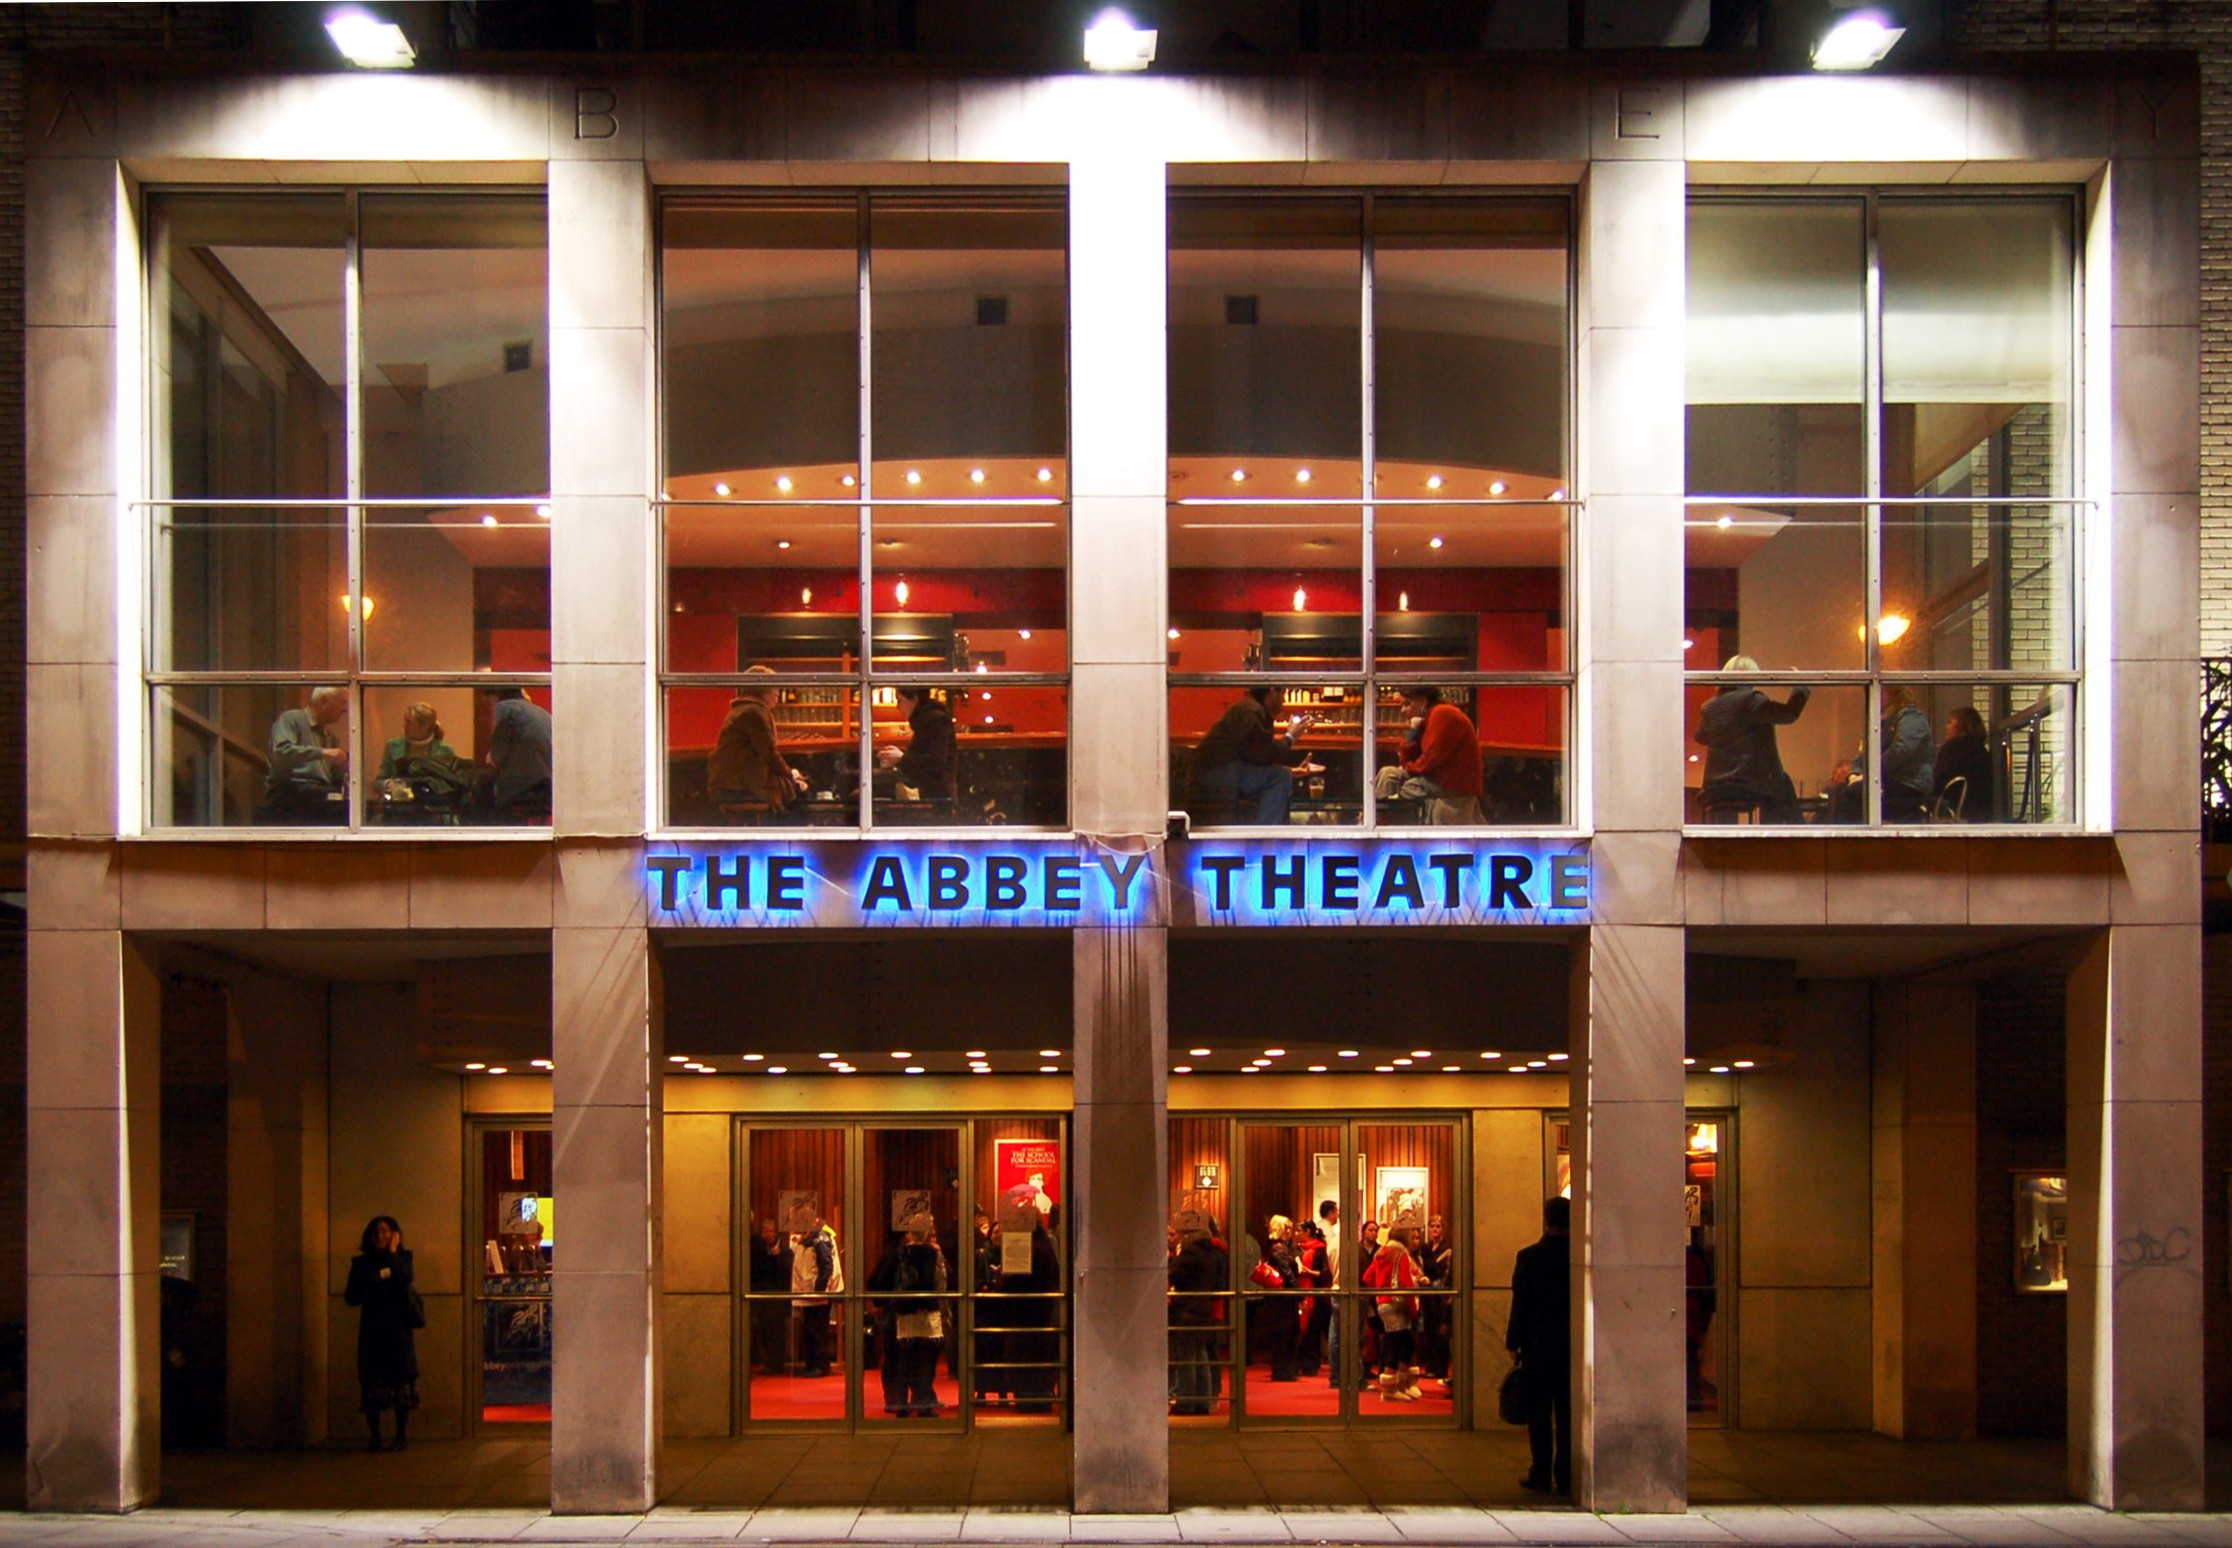 Dublin's Abbey Theatre